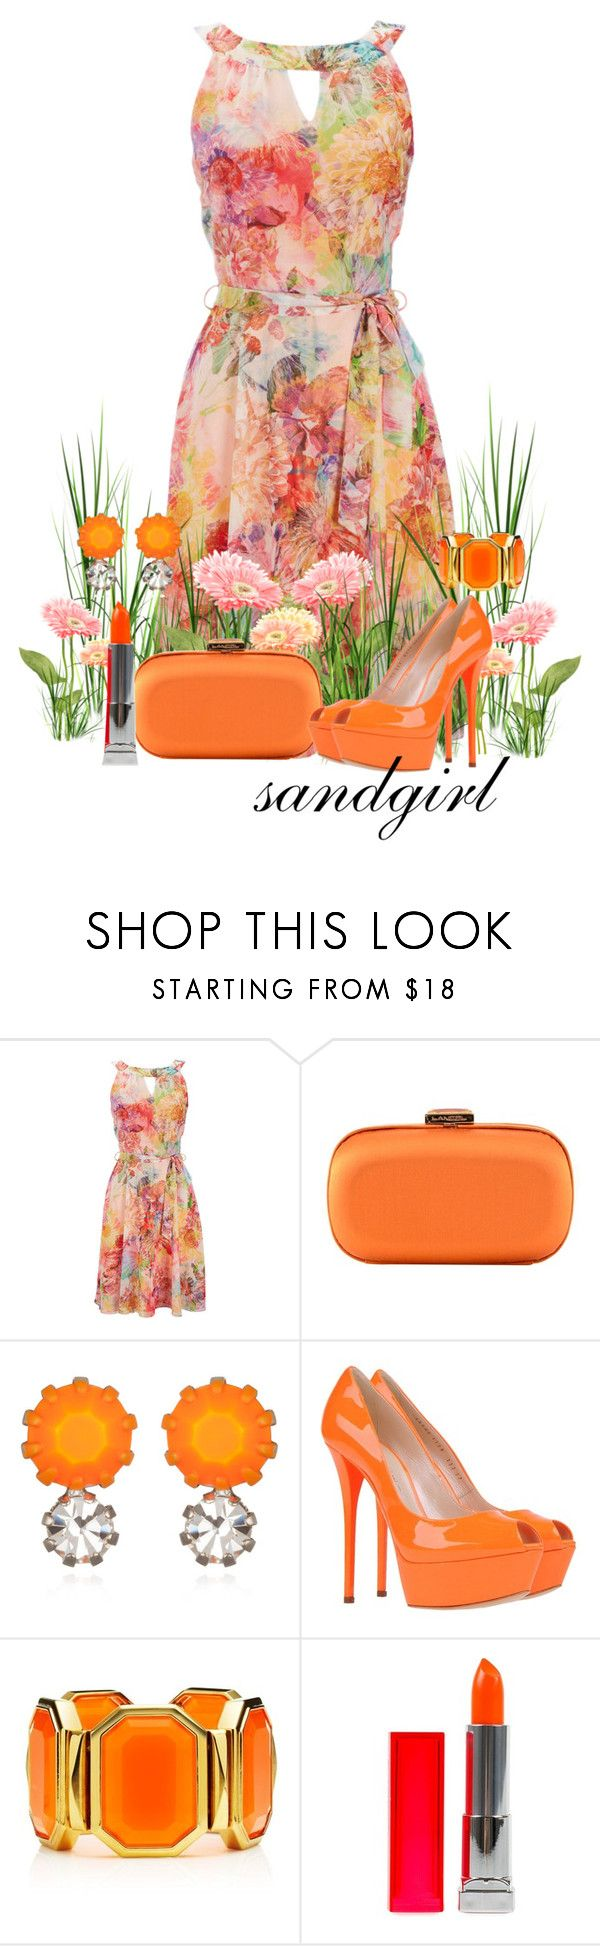 """""""Freshness of Spring"""" by sandgirl-435 ❤ liked on Polyvore featuring Wallis, Lancel, Tom Binns, Casadei, Juicy Couture and Maybelline"""